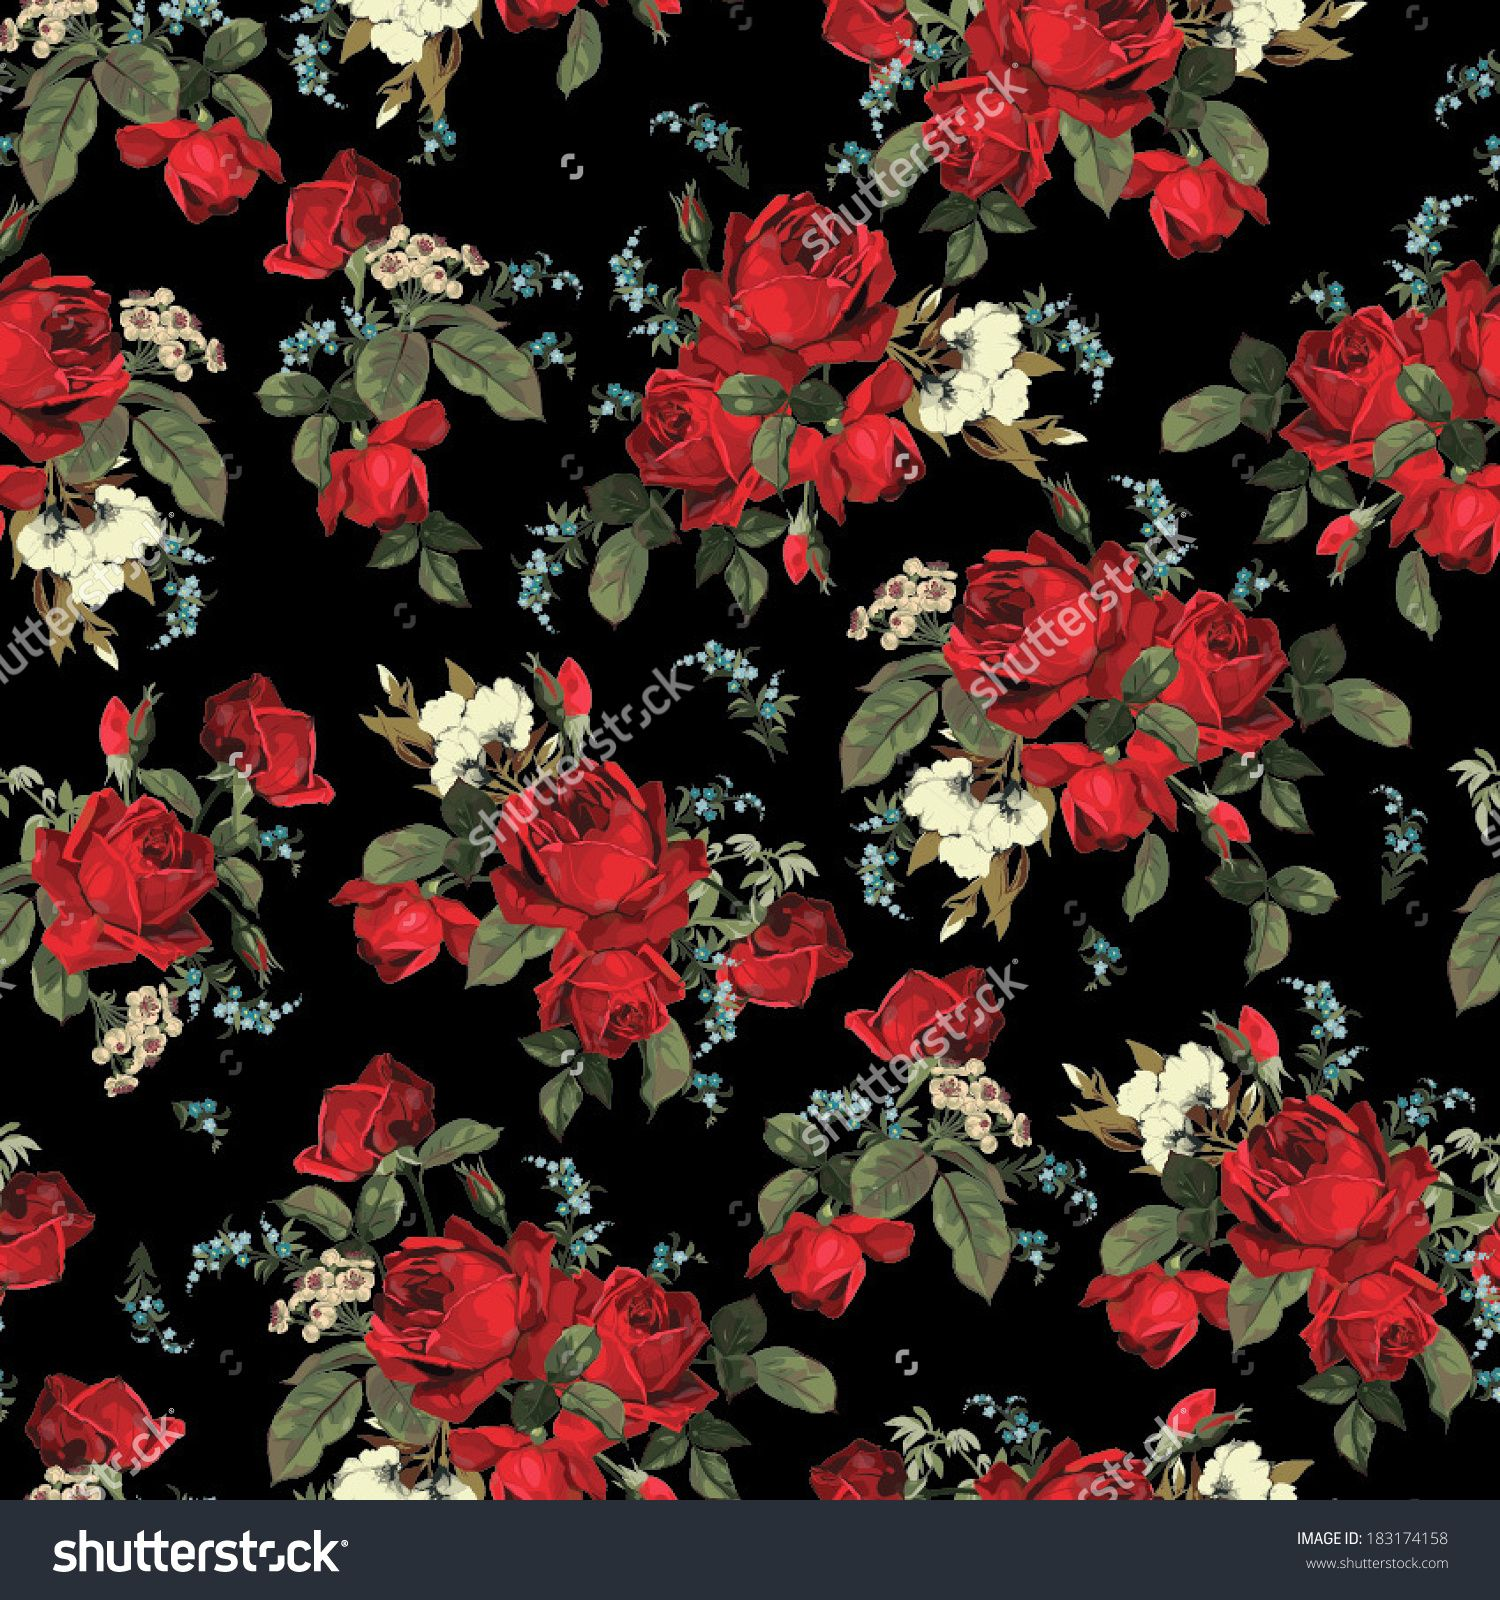 Seamless Floral Pattern With Of Red Roses On Black Background